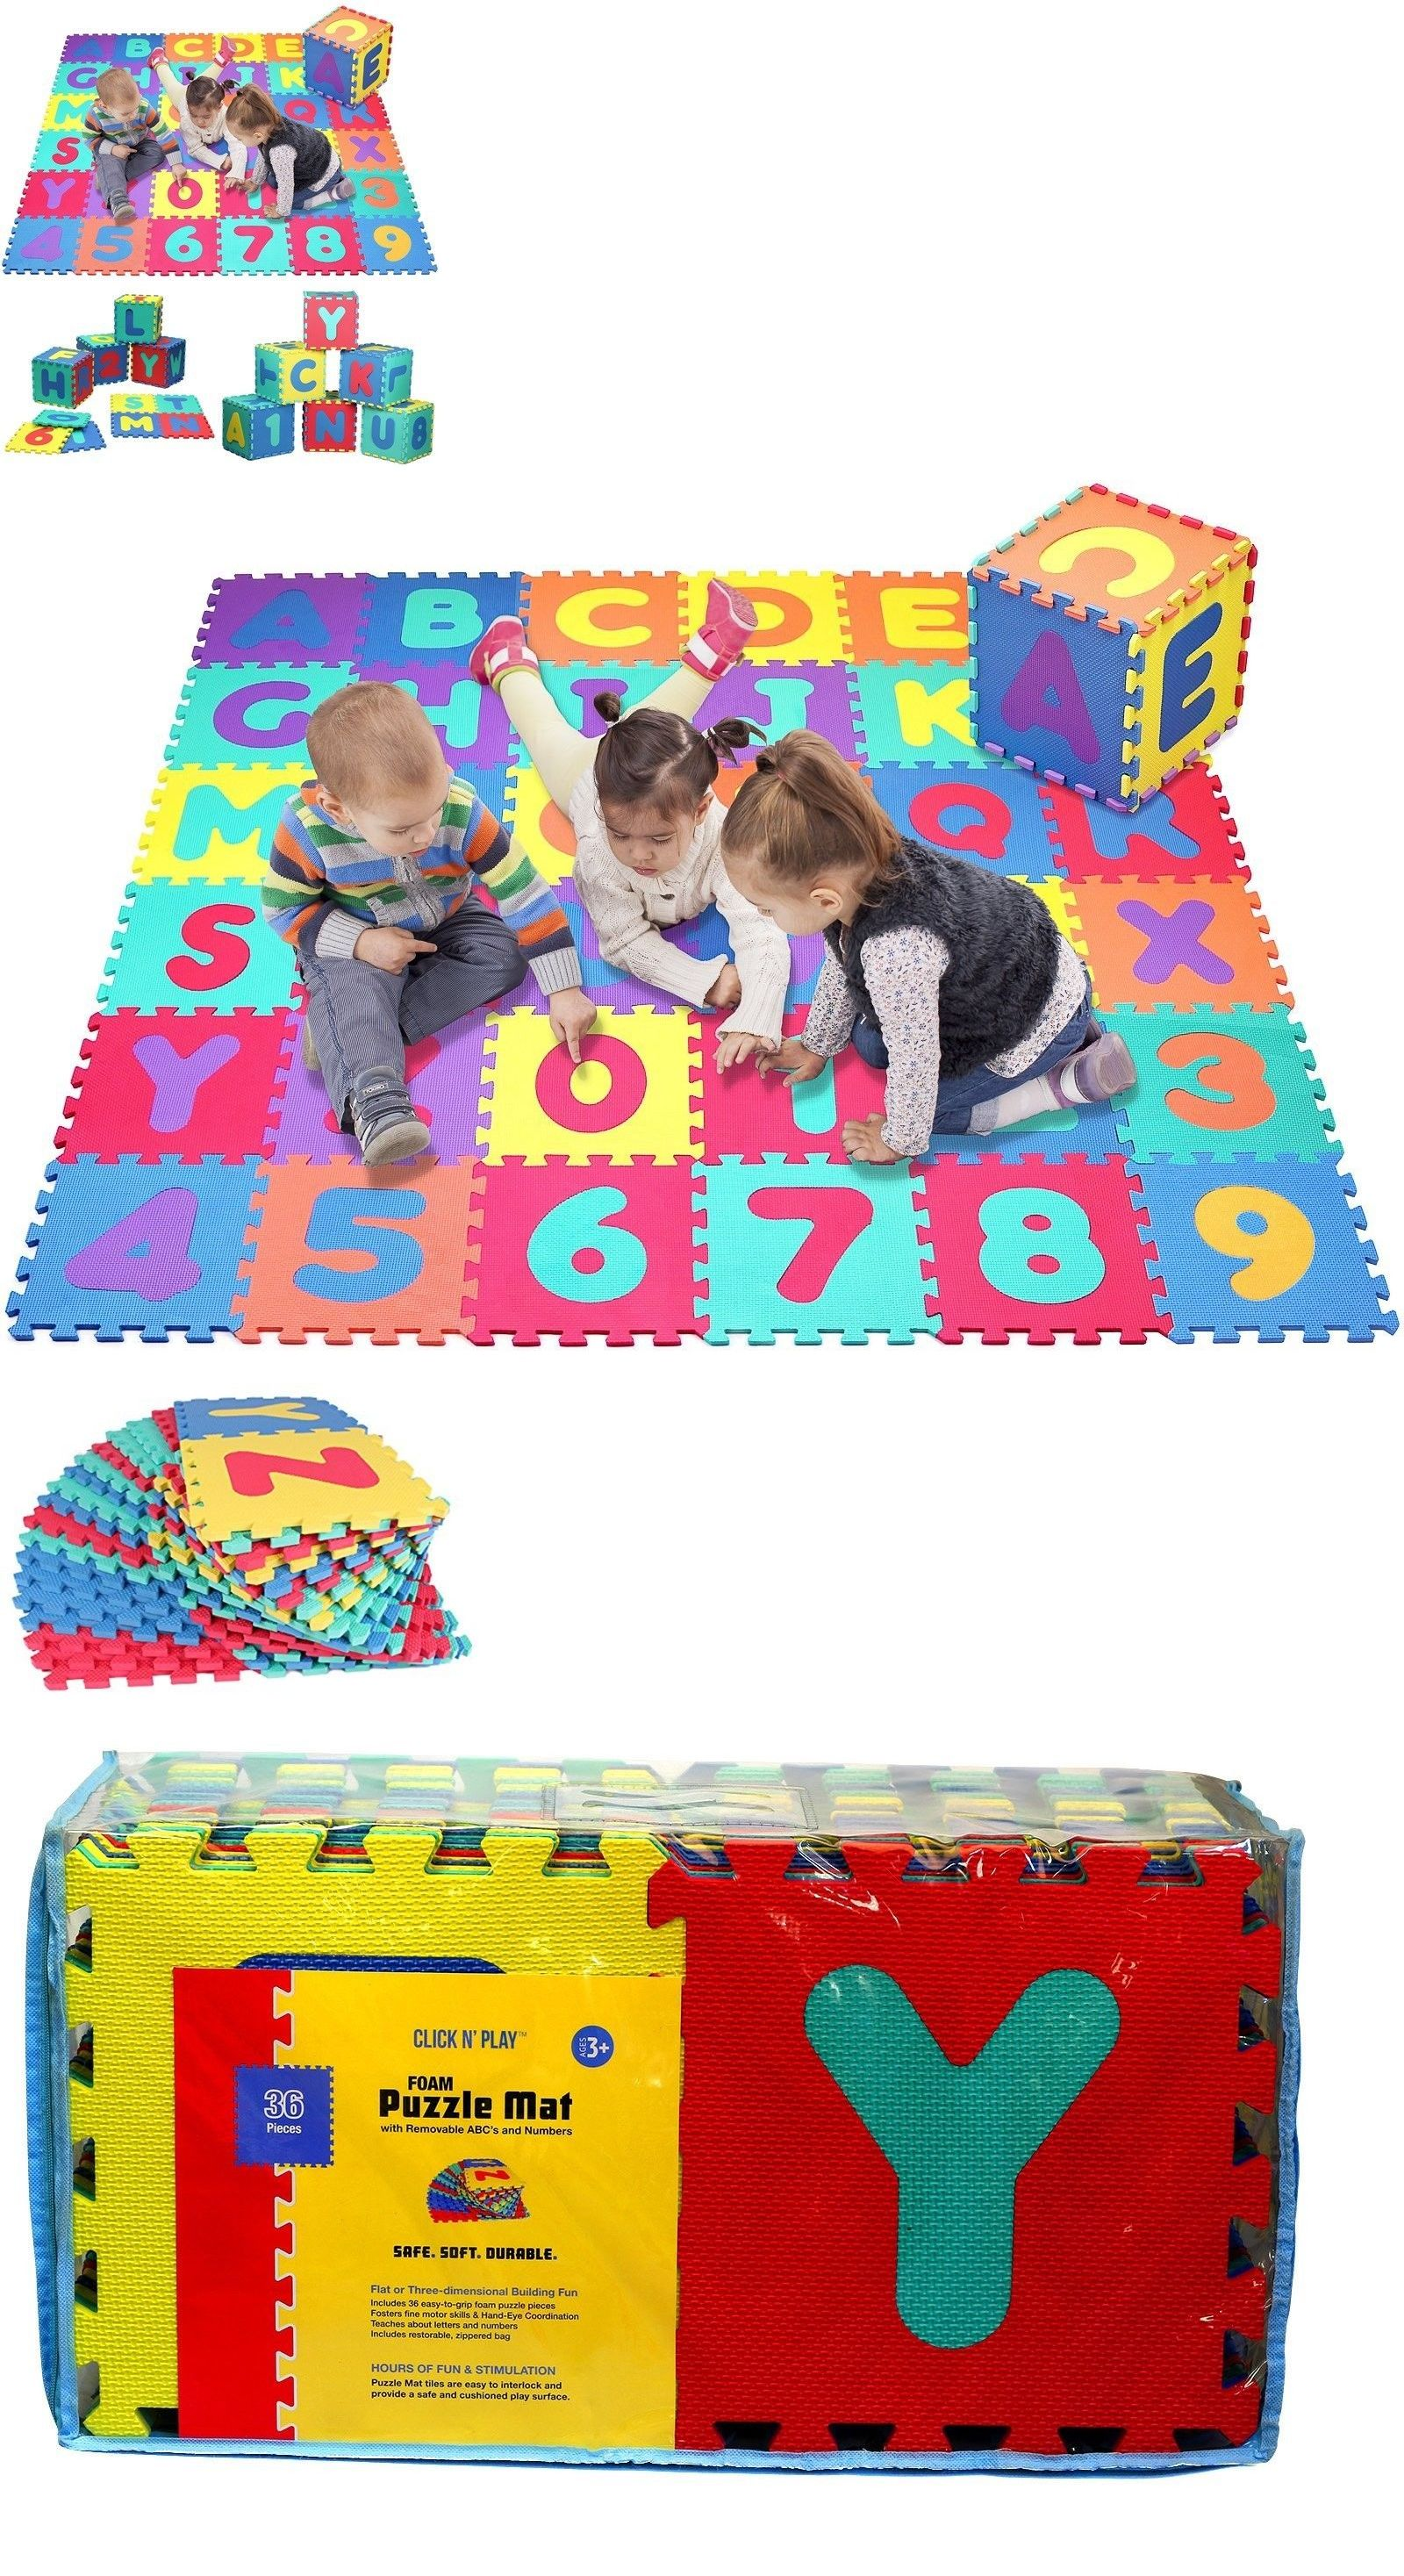 keyboard play lights buy activity baby momo gym playmat mats with toys house mat playgym version toddler shop playmats games music